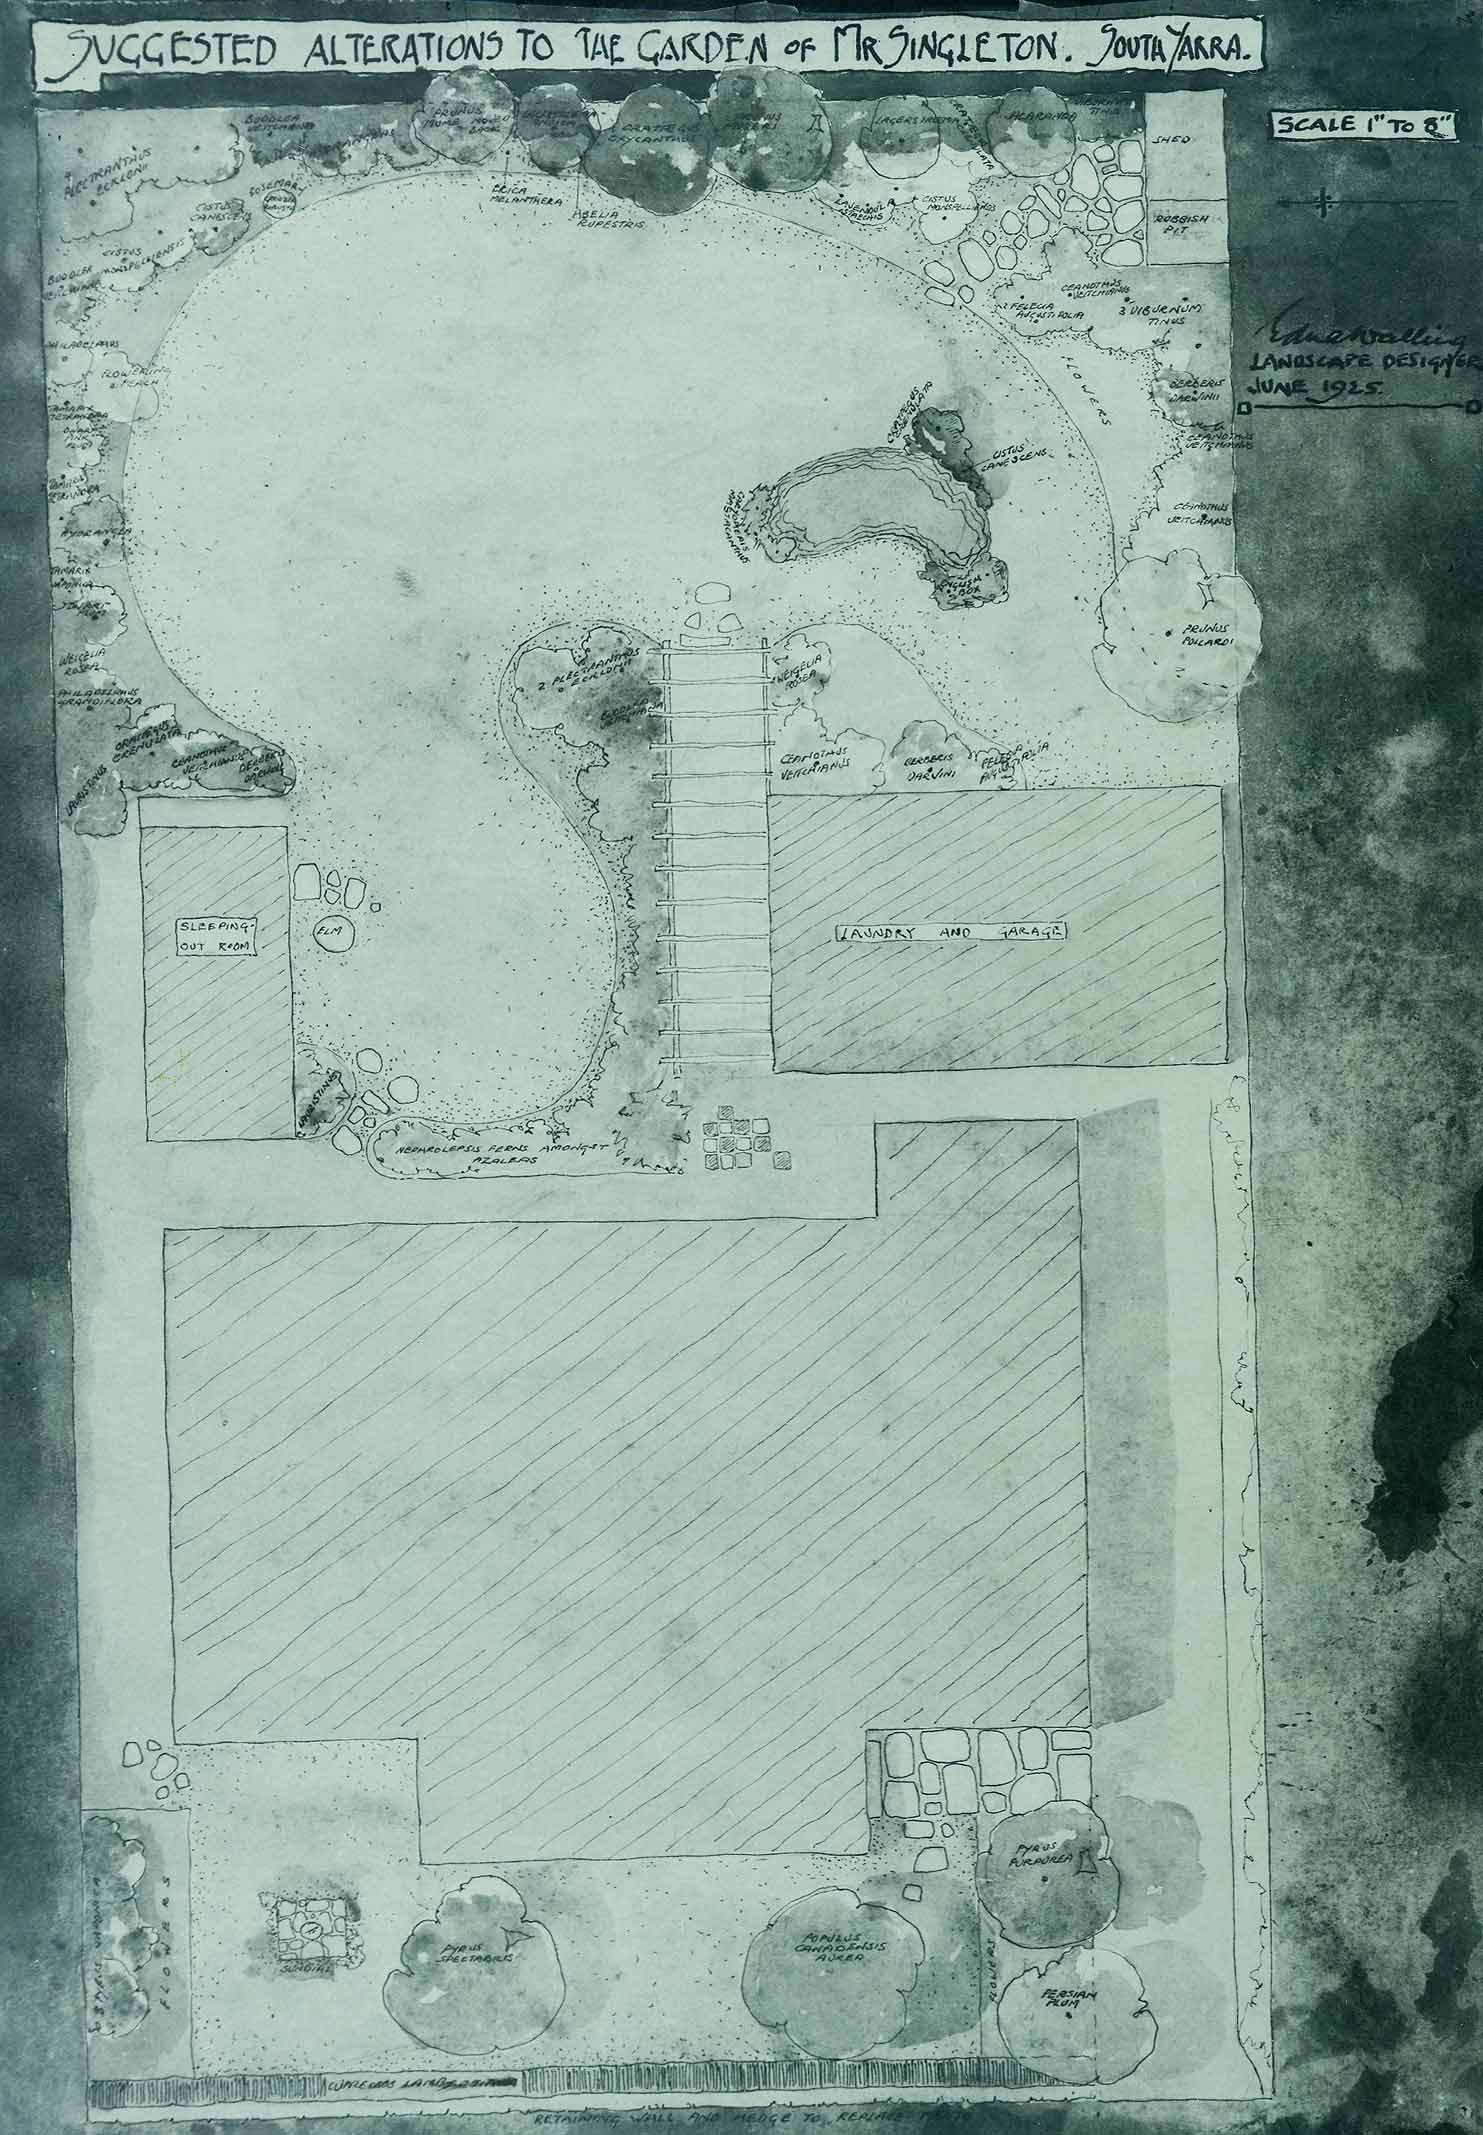 Suggested garden alterations singleton for Suggested garden layout